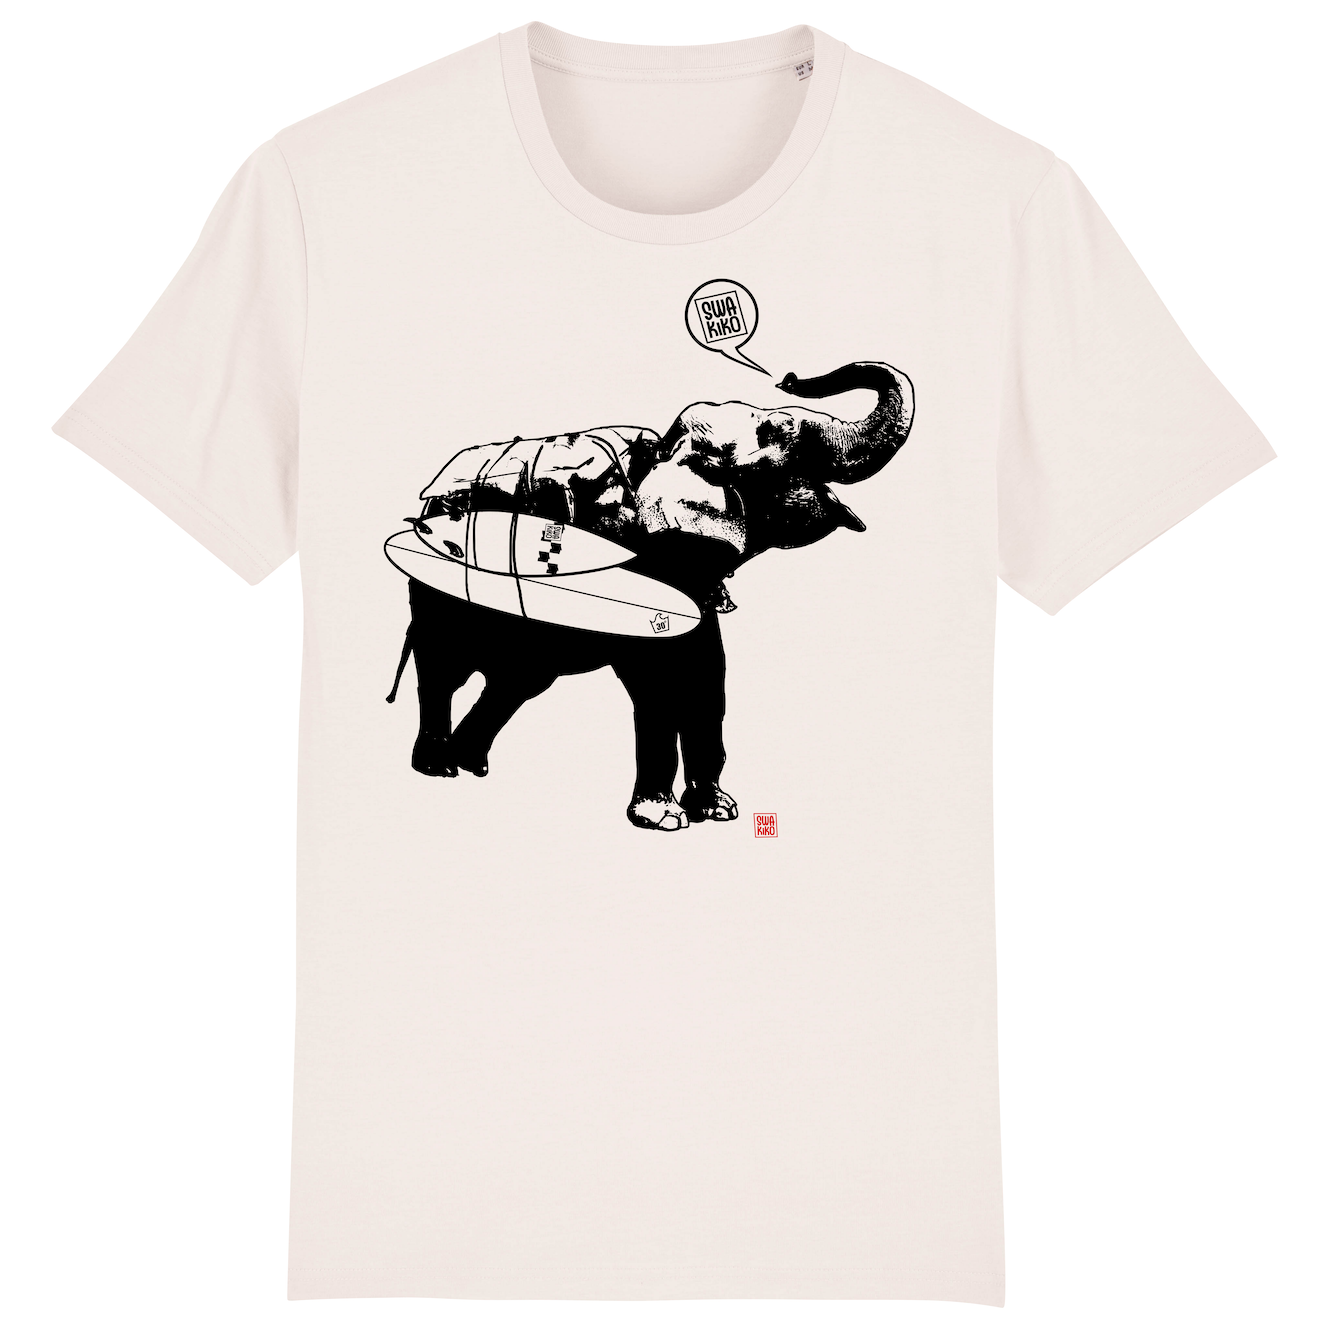 Surf t-shirt men white, Elephant